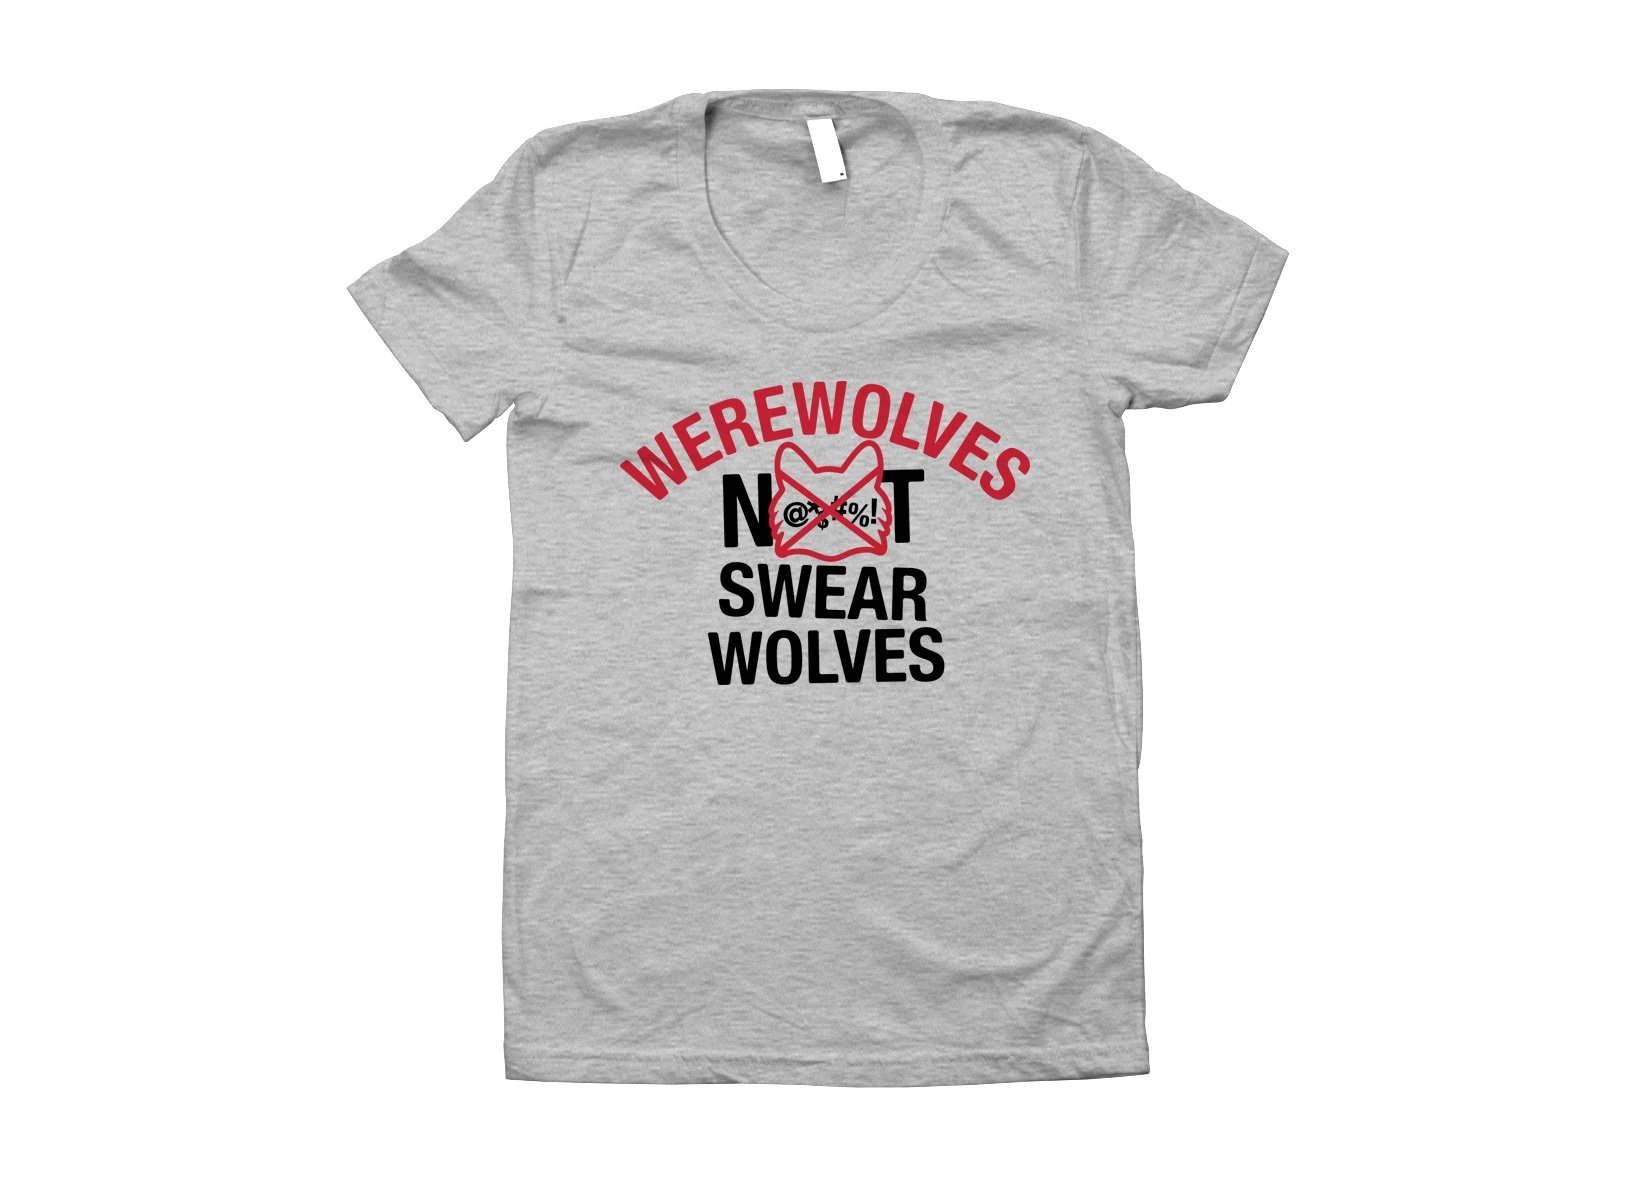 Werewolves Not Swearwolves on Juniors T-Shirt